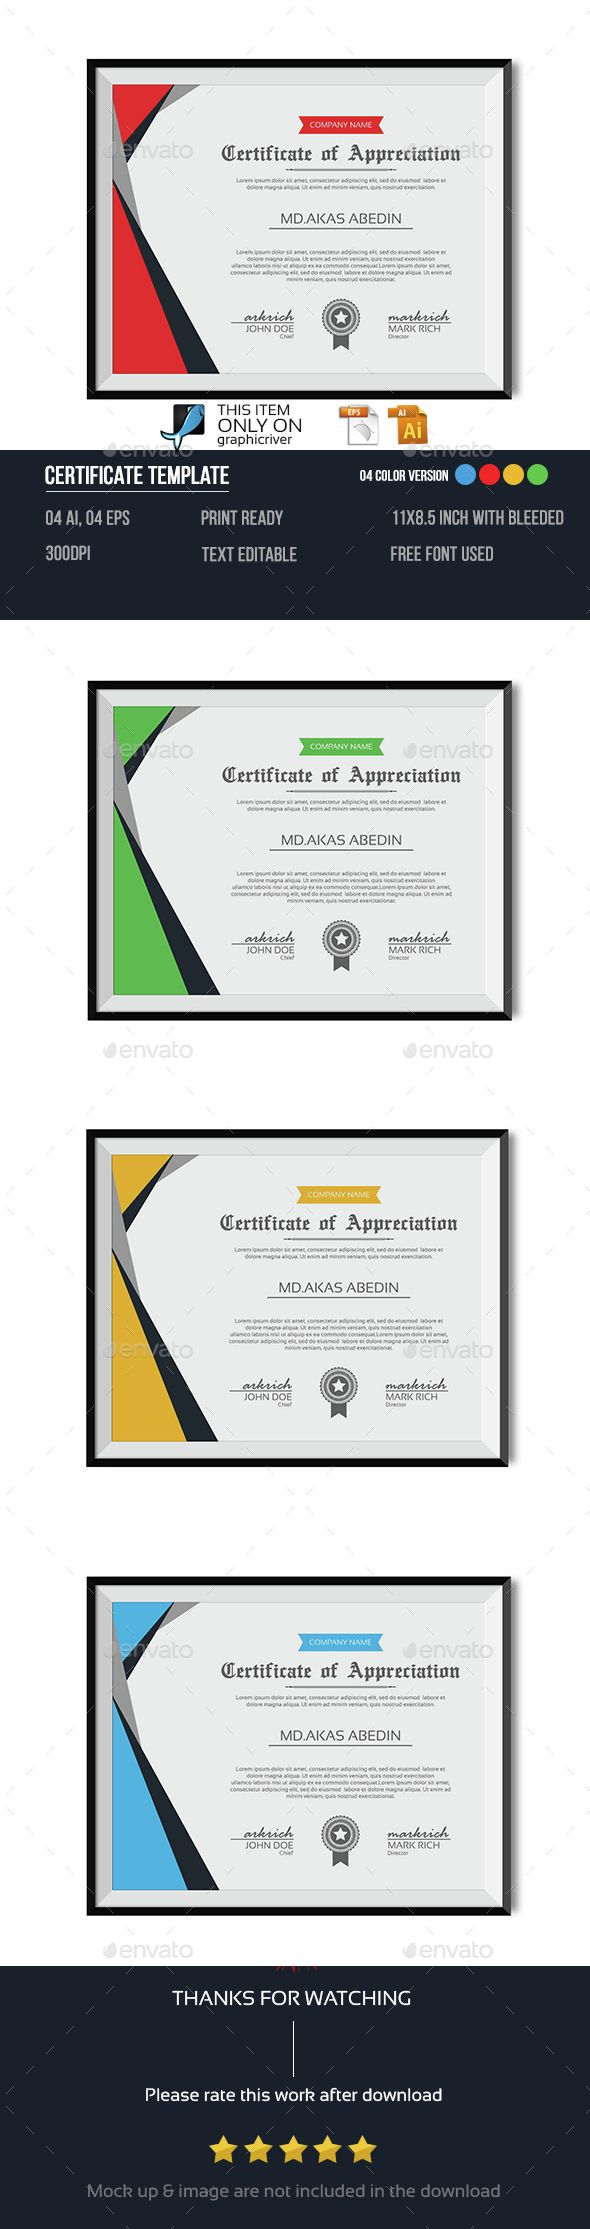 Best Certificate Of Merit Images On   Certificate